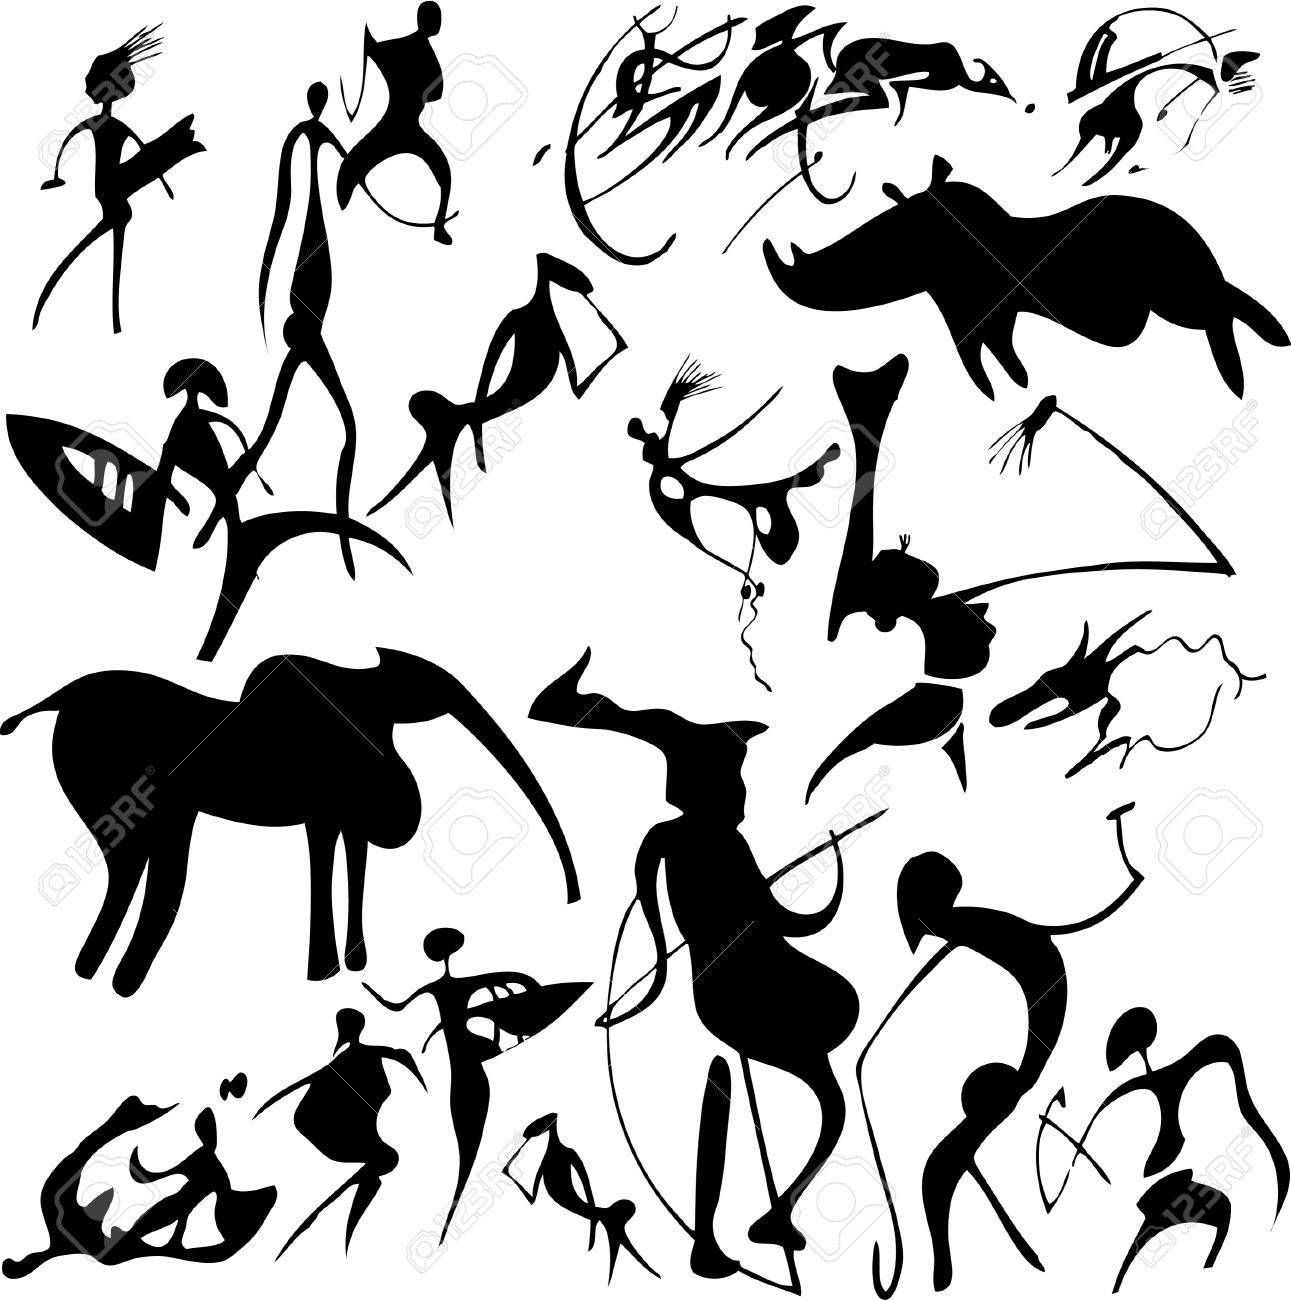 1291x1300 Cave Painting On A White Background. Vector Art Illustration